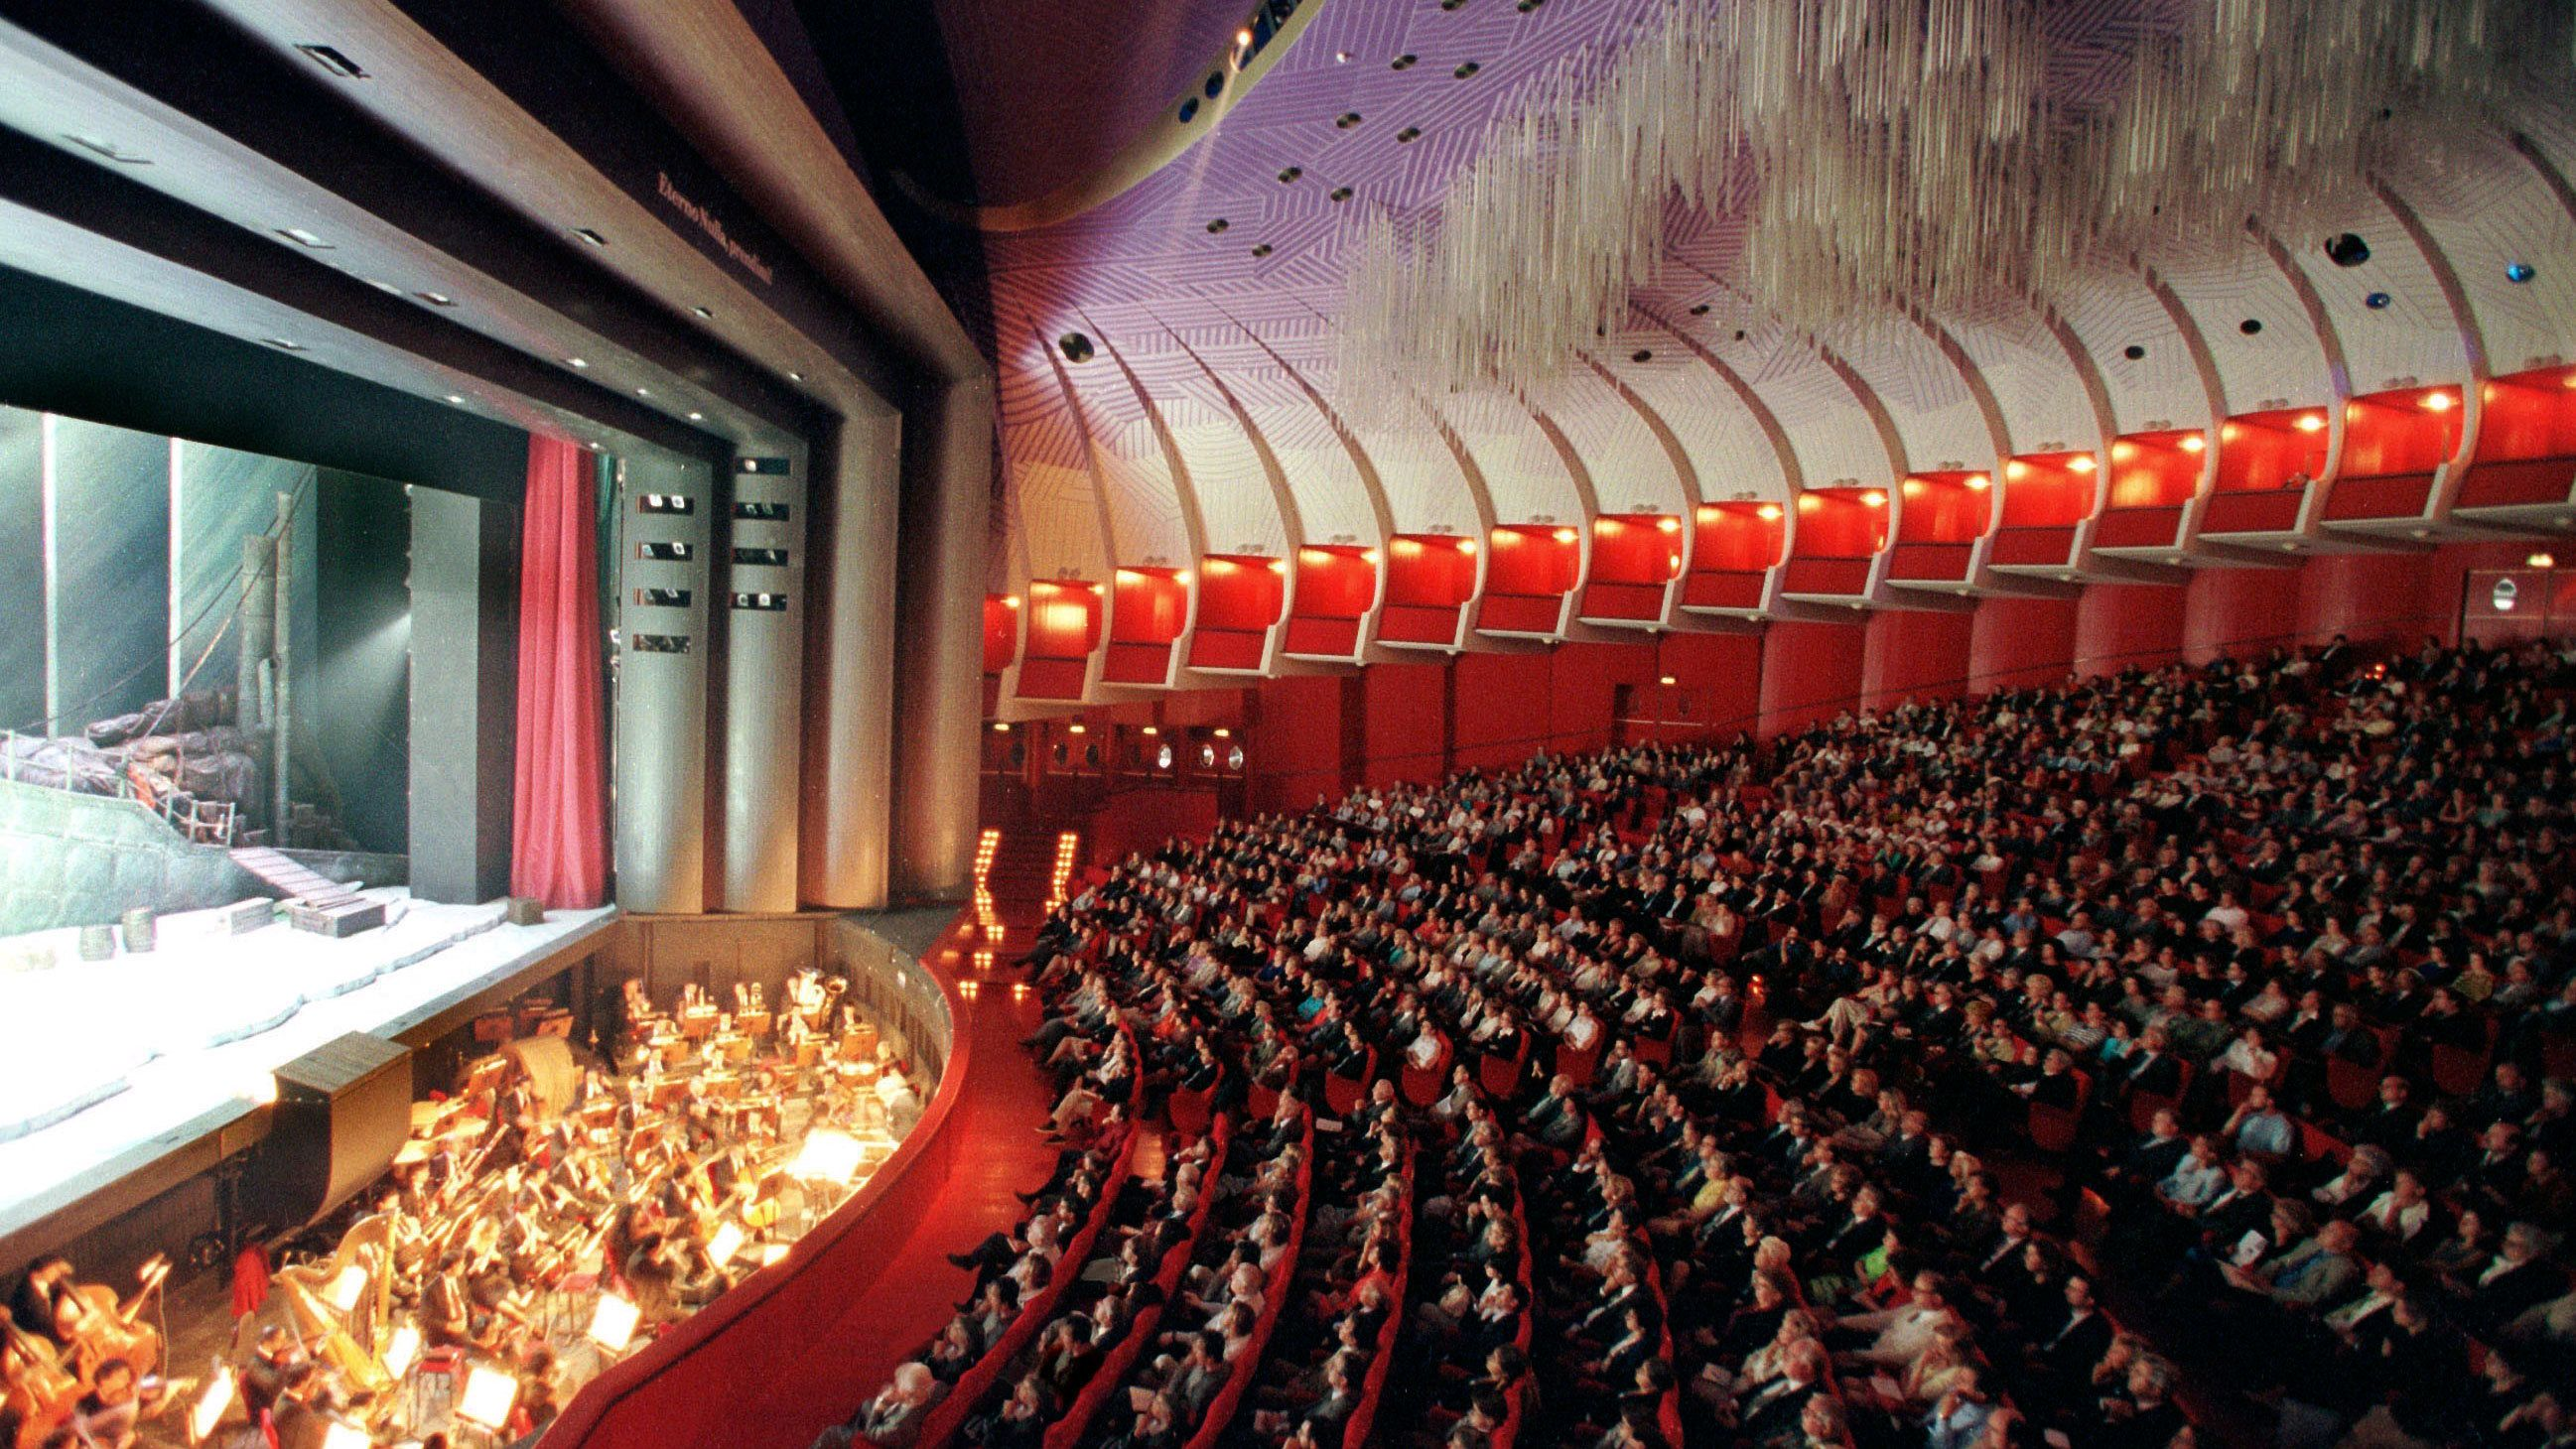 A full house at a theater in Turin